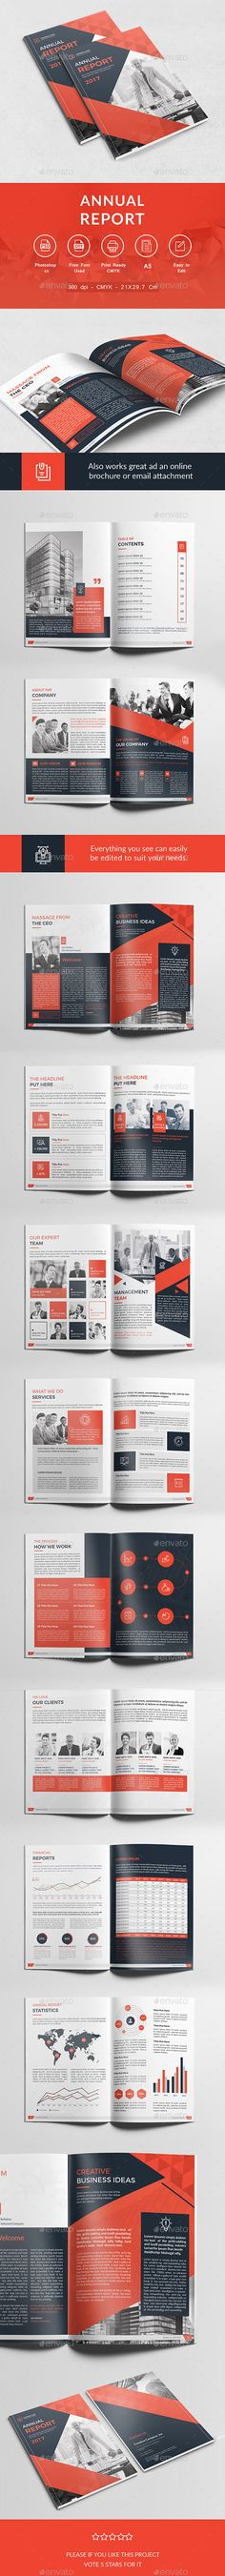 A5 Annual Report  — PSD Template #professional #business • Download ➝ https://graphicriver.net/item/a5-annual-report/18145096?ref=pxcr